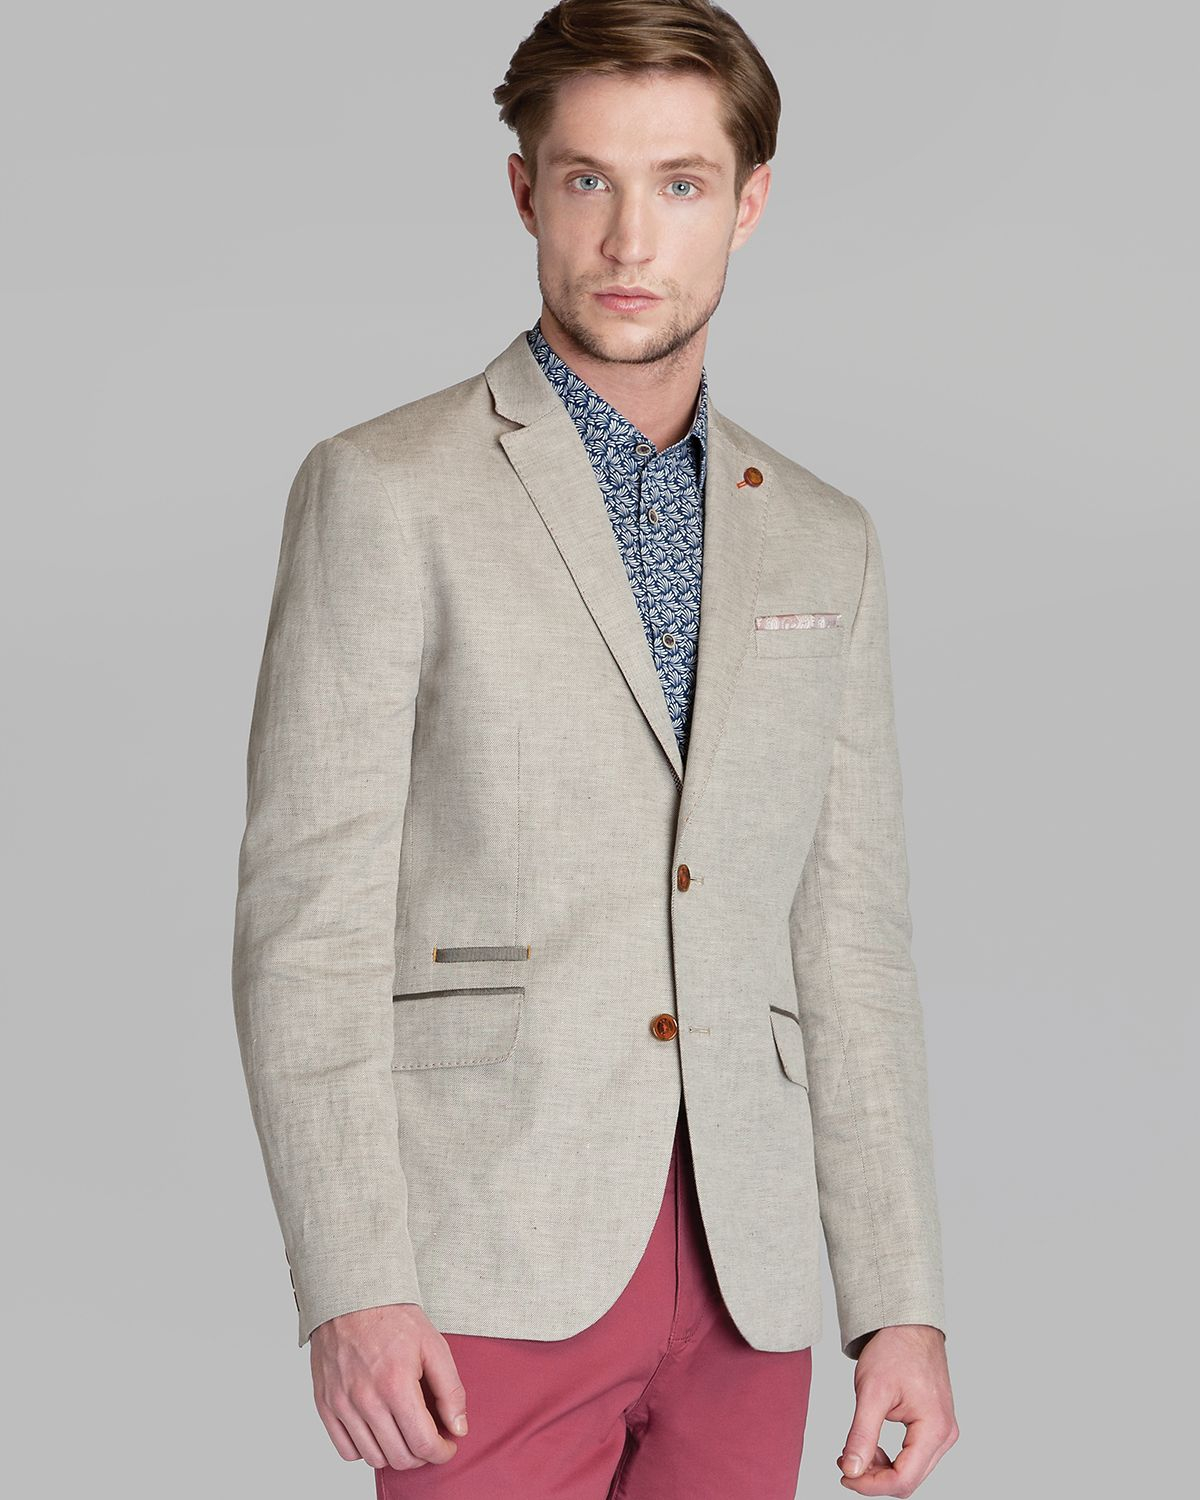 a4b32826eeff Lyst - Ted Baker Dainy Linen Blazer in Natural for Men